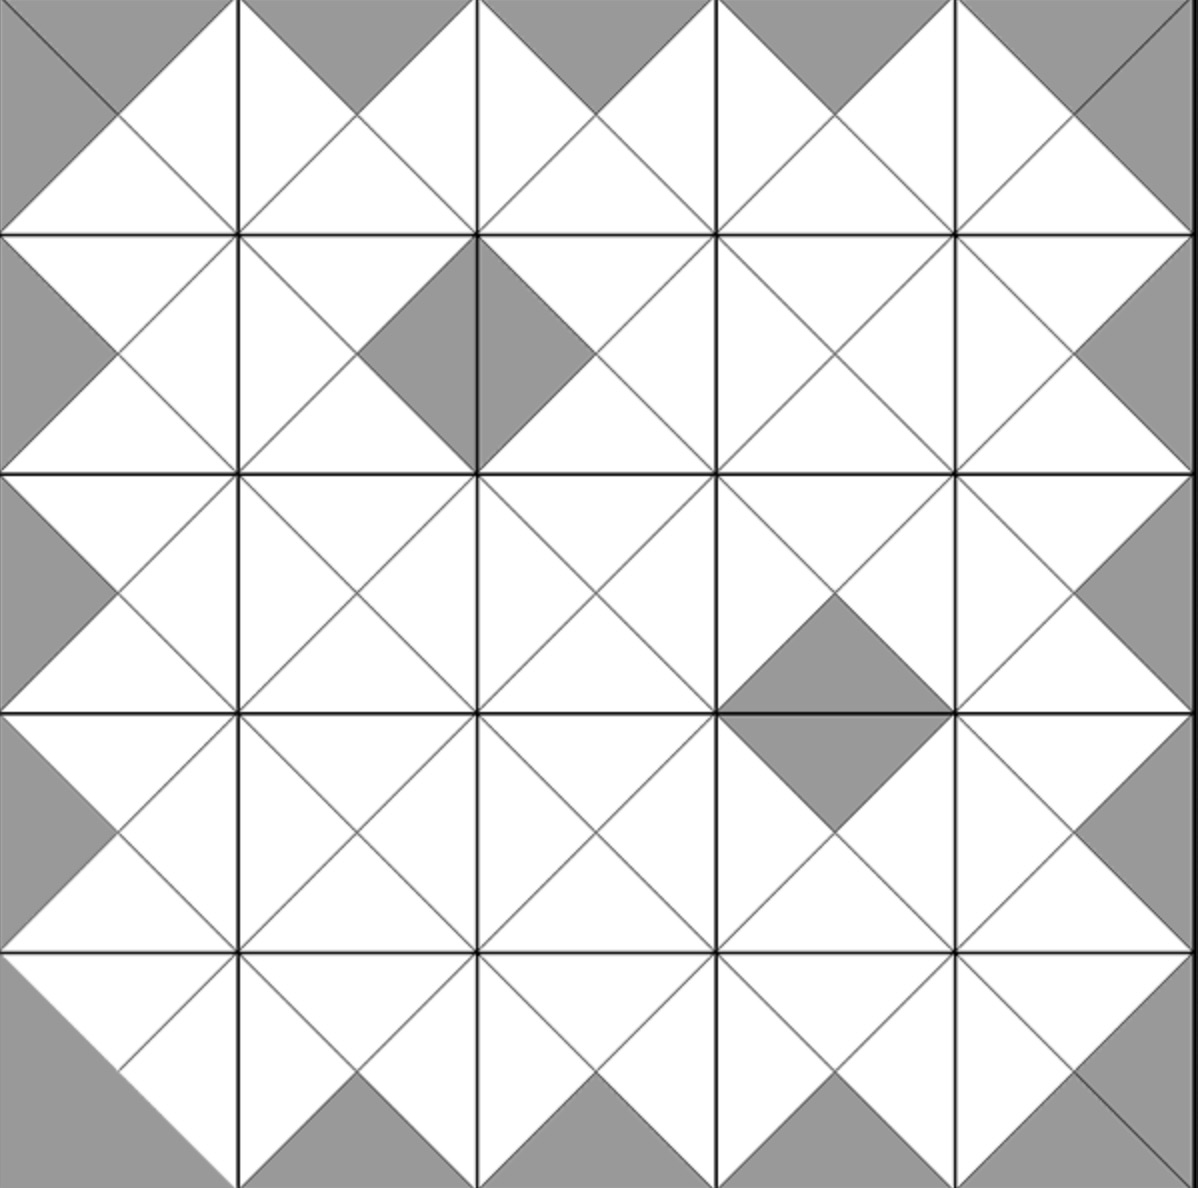 Grades 7 To 9 Fraction Jigsaw